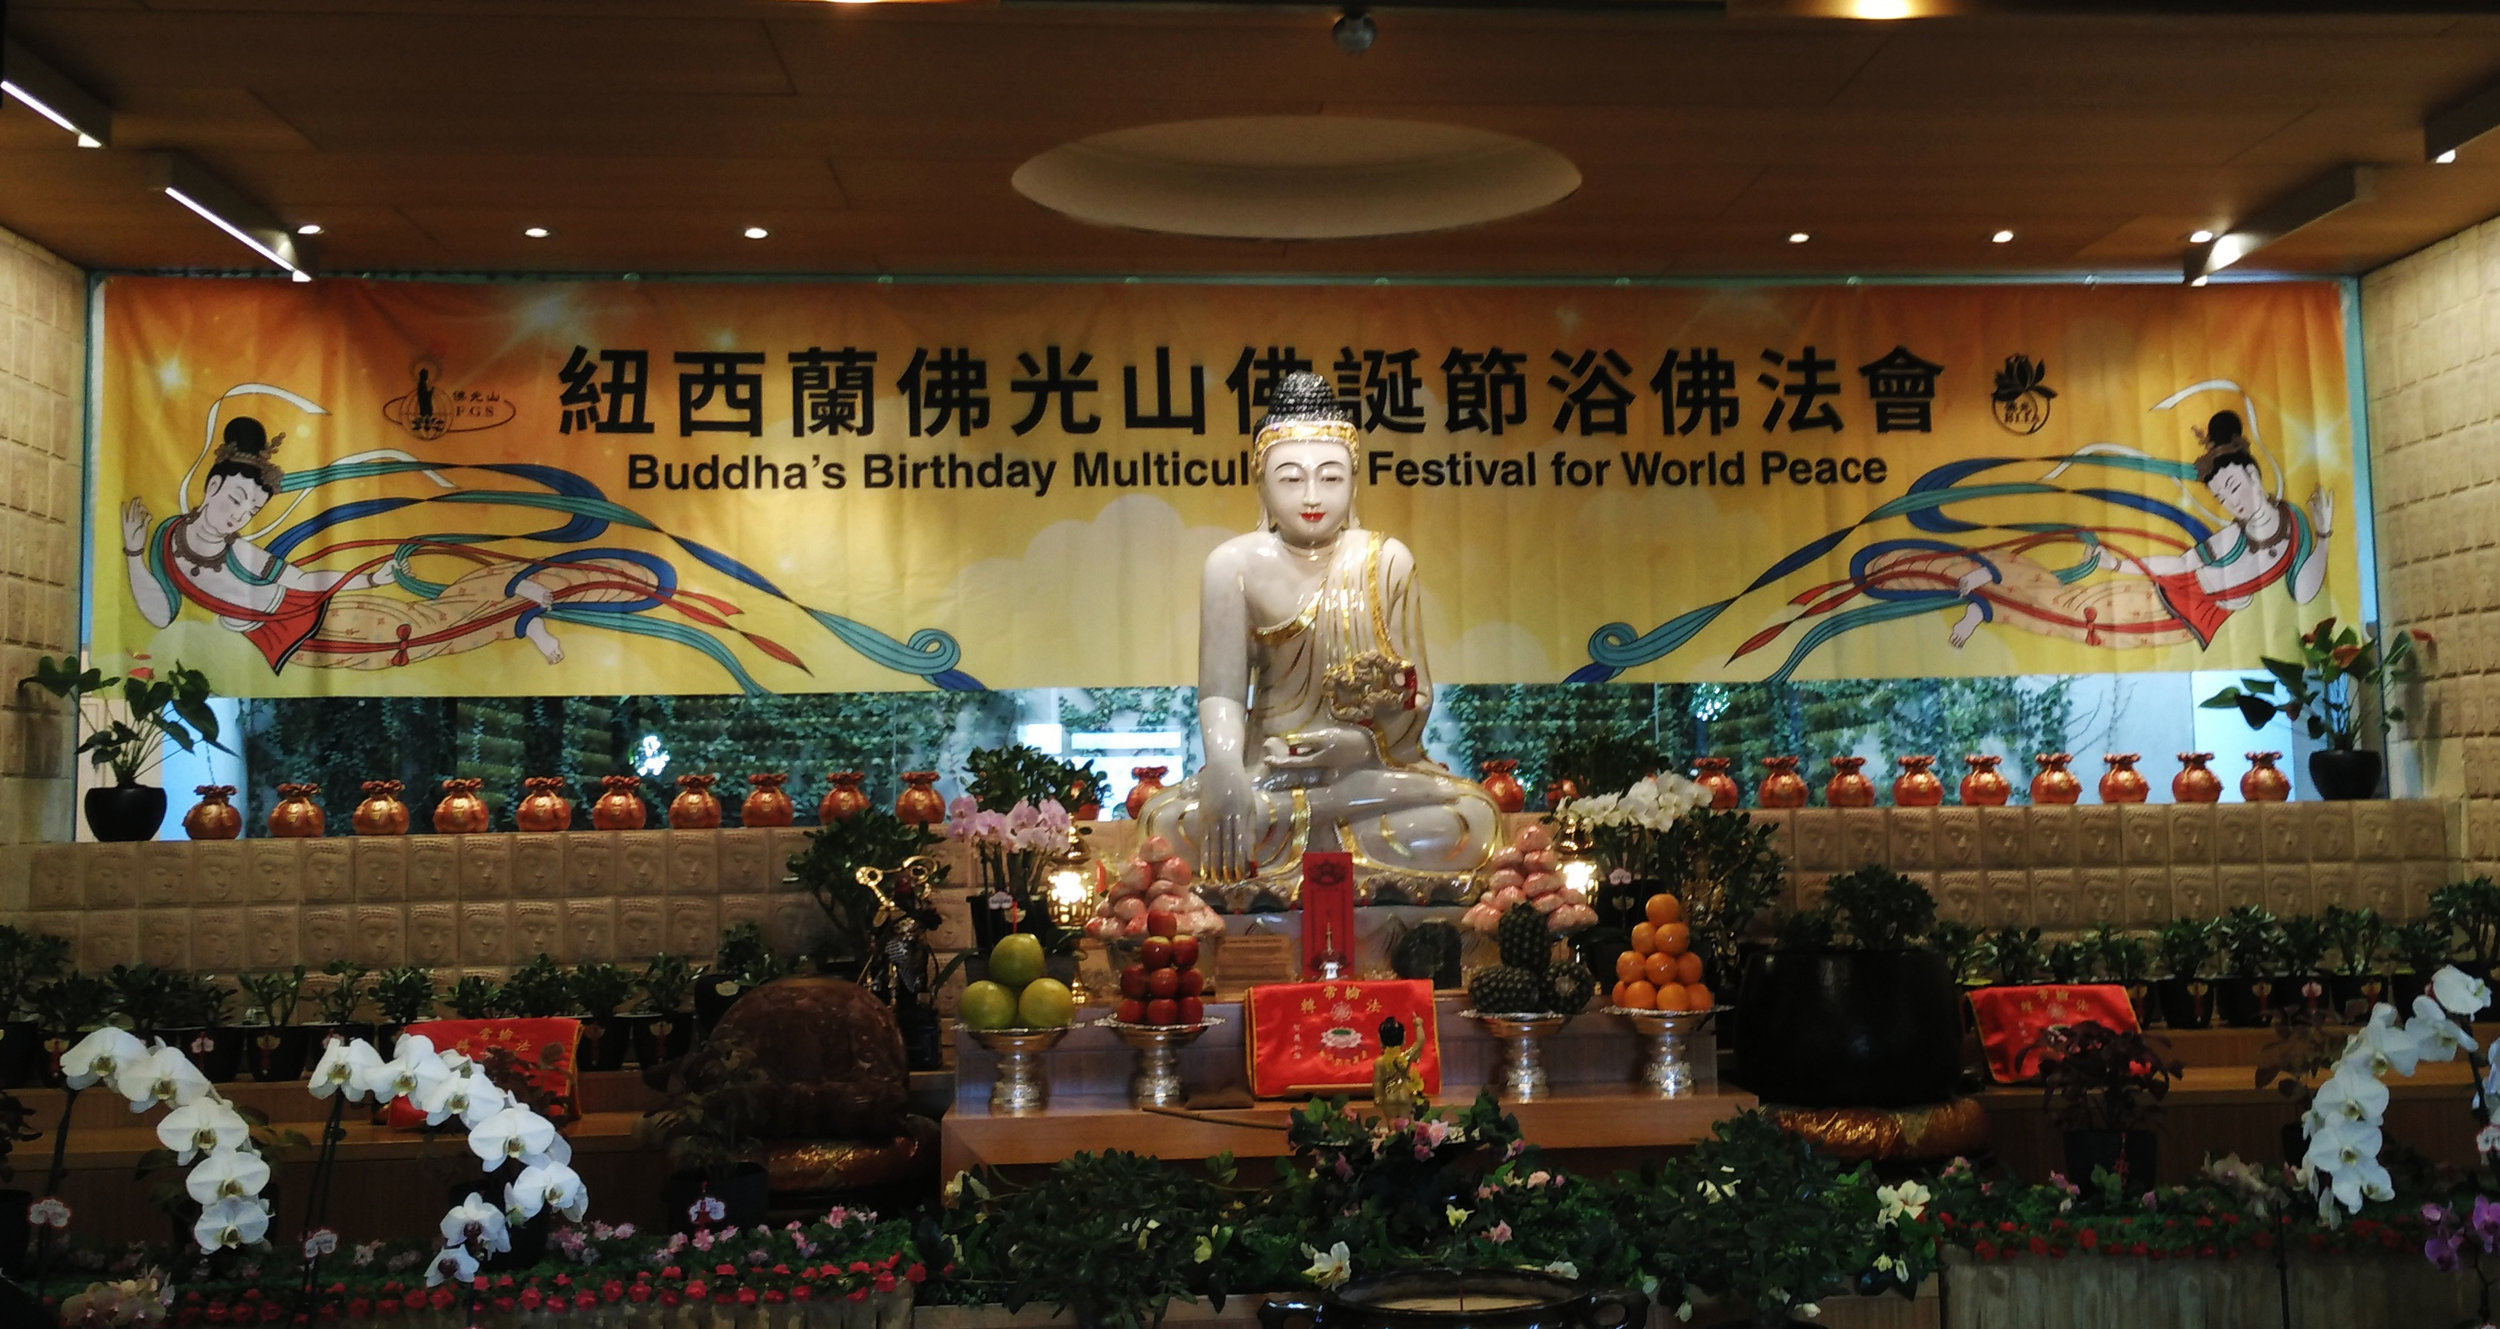 Celebrations at FGS Buddhist temple Christchurch's 10th anniversary and Buddha's birthday festival on April 22